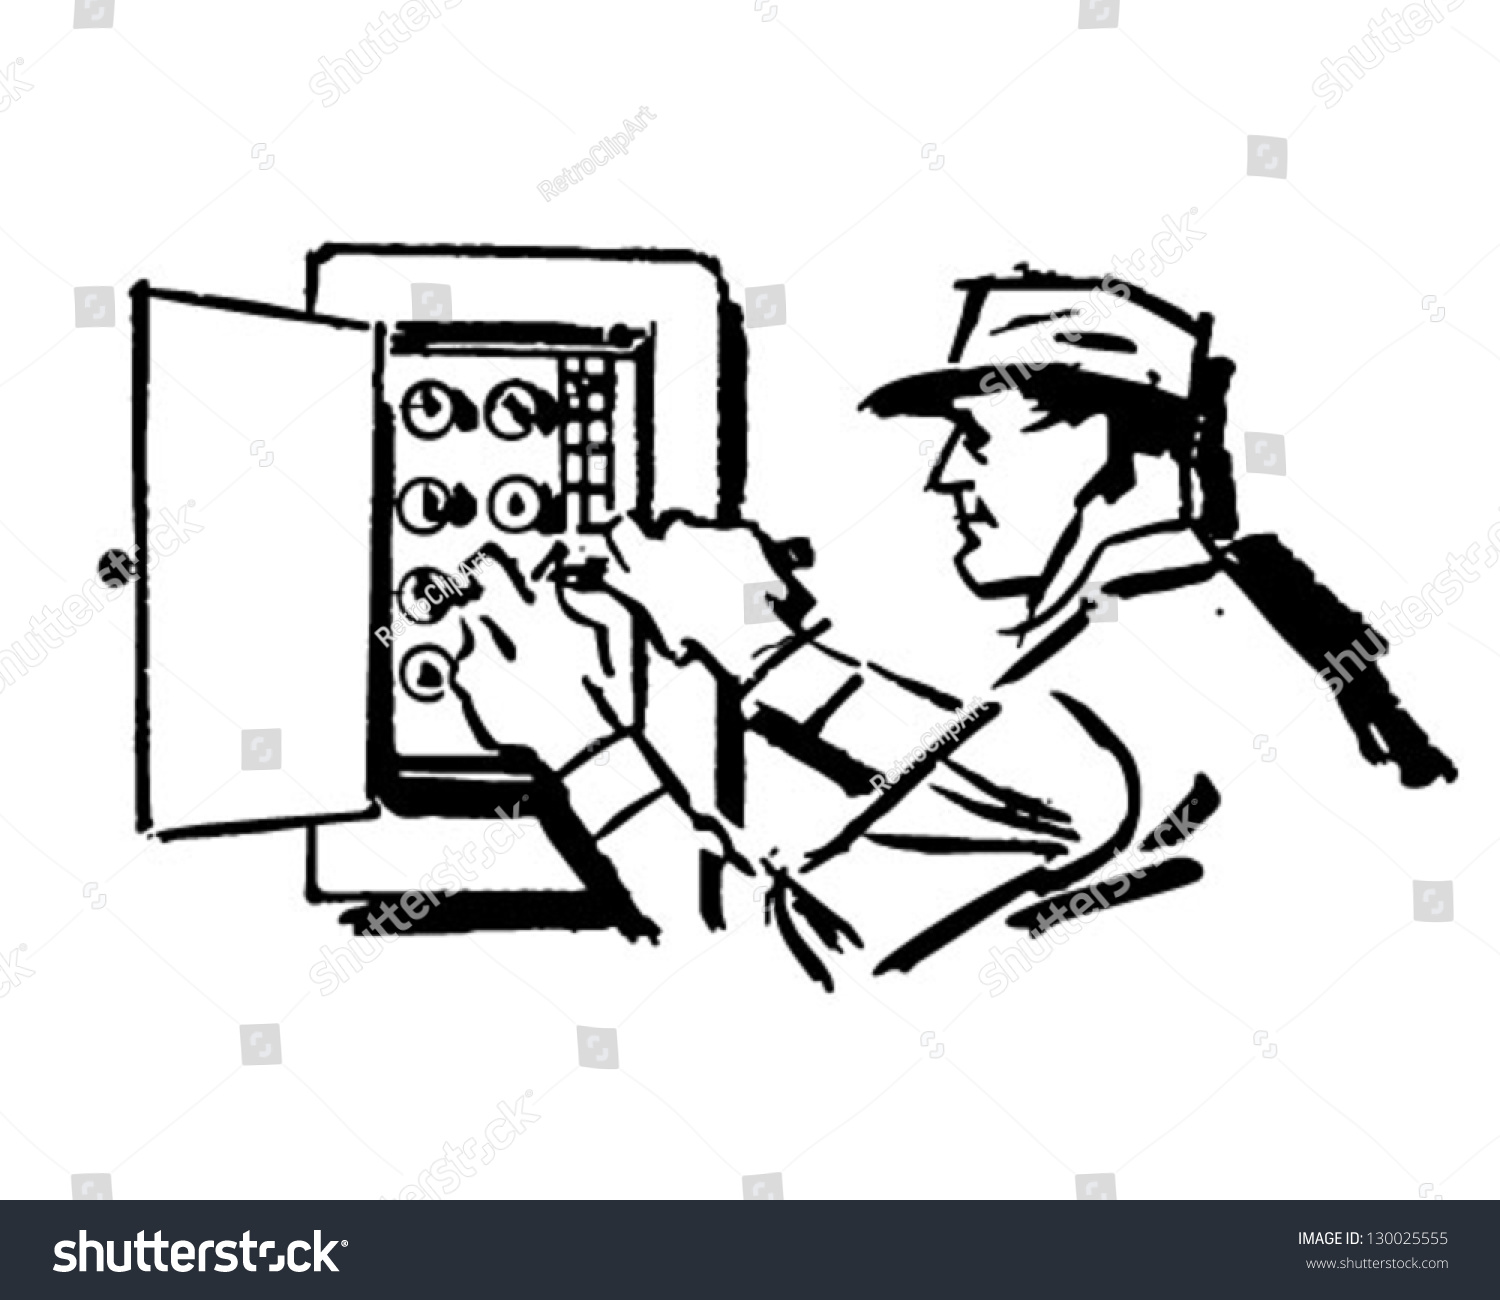 Electrician Work Retro Clip Art Illustration Stock Vektorgrafik